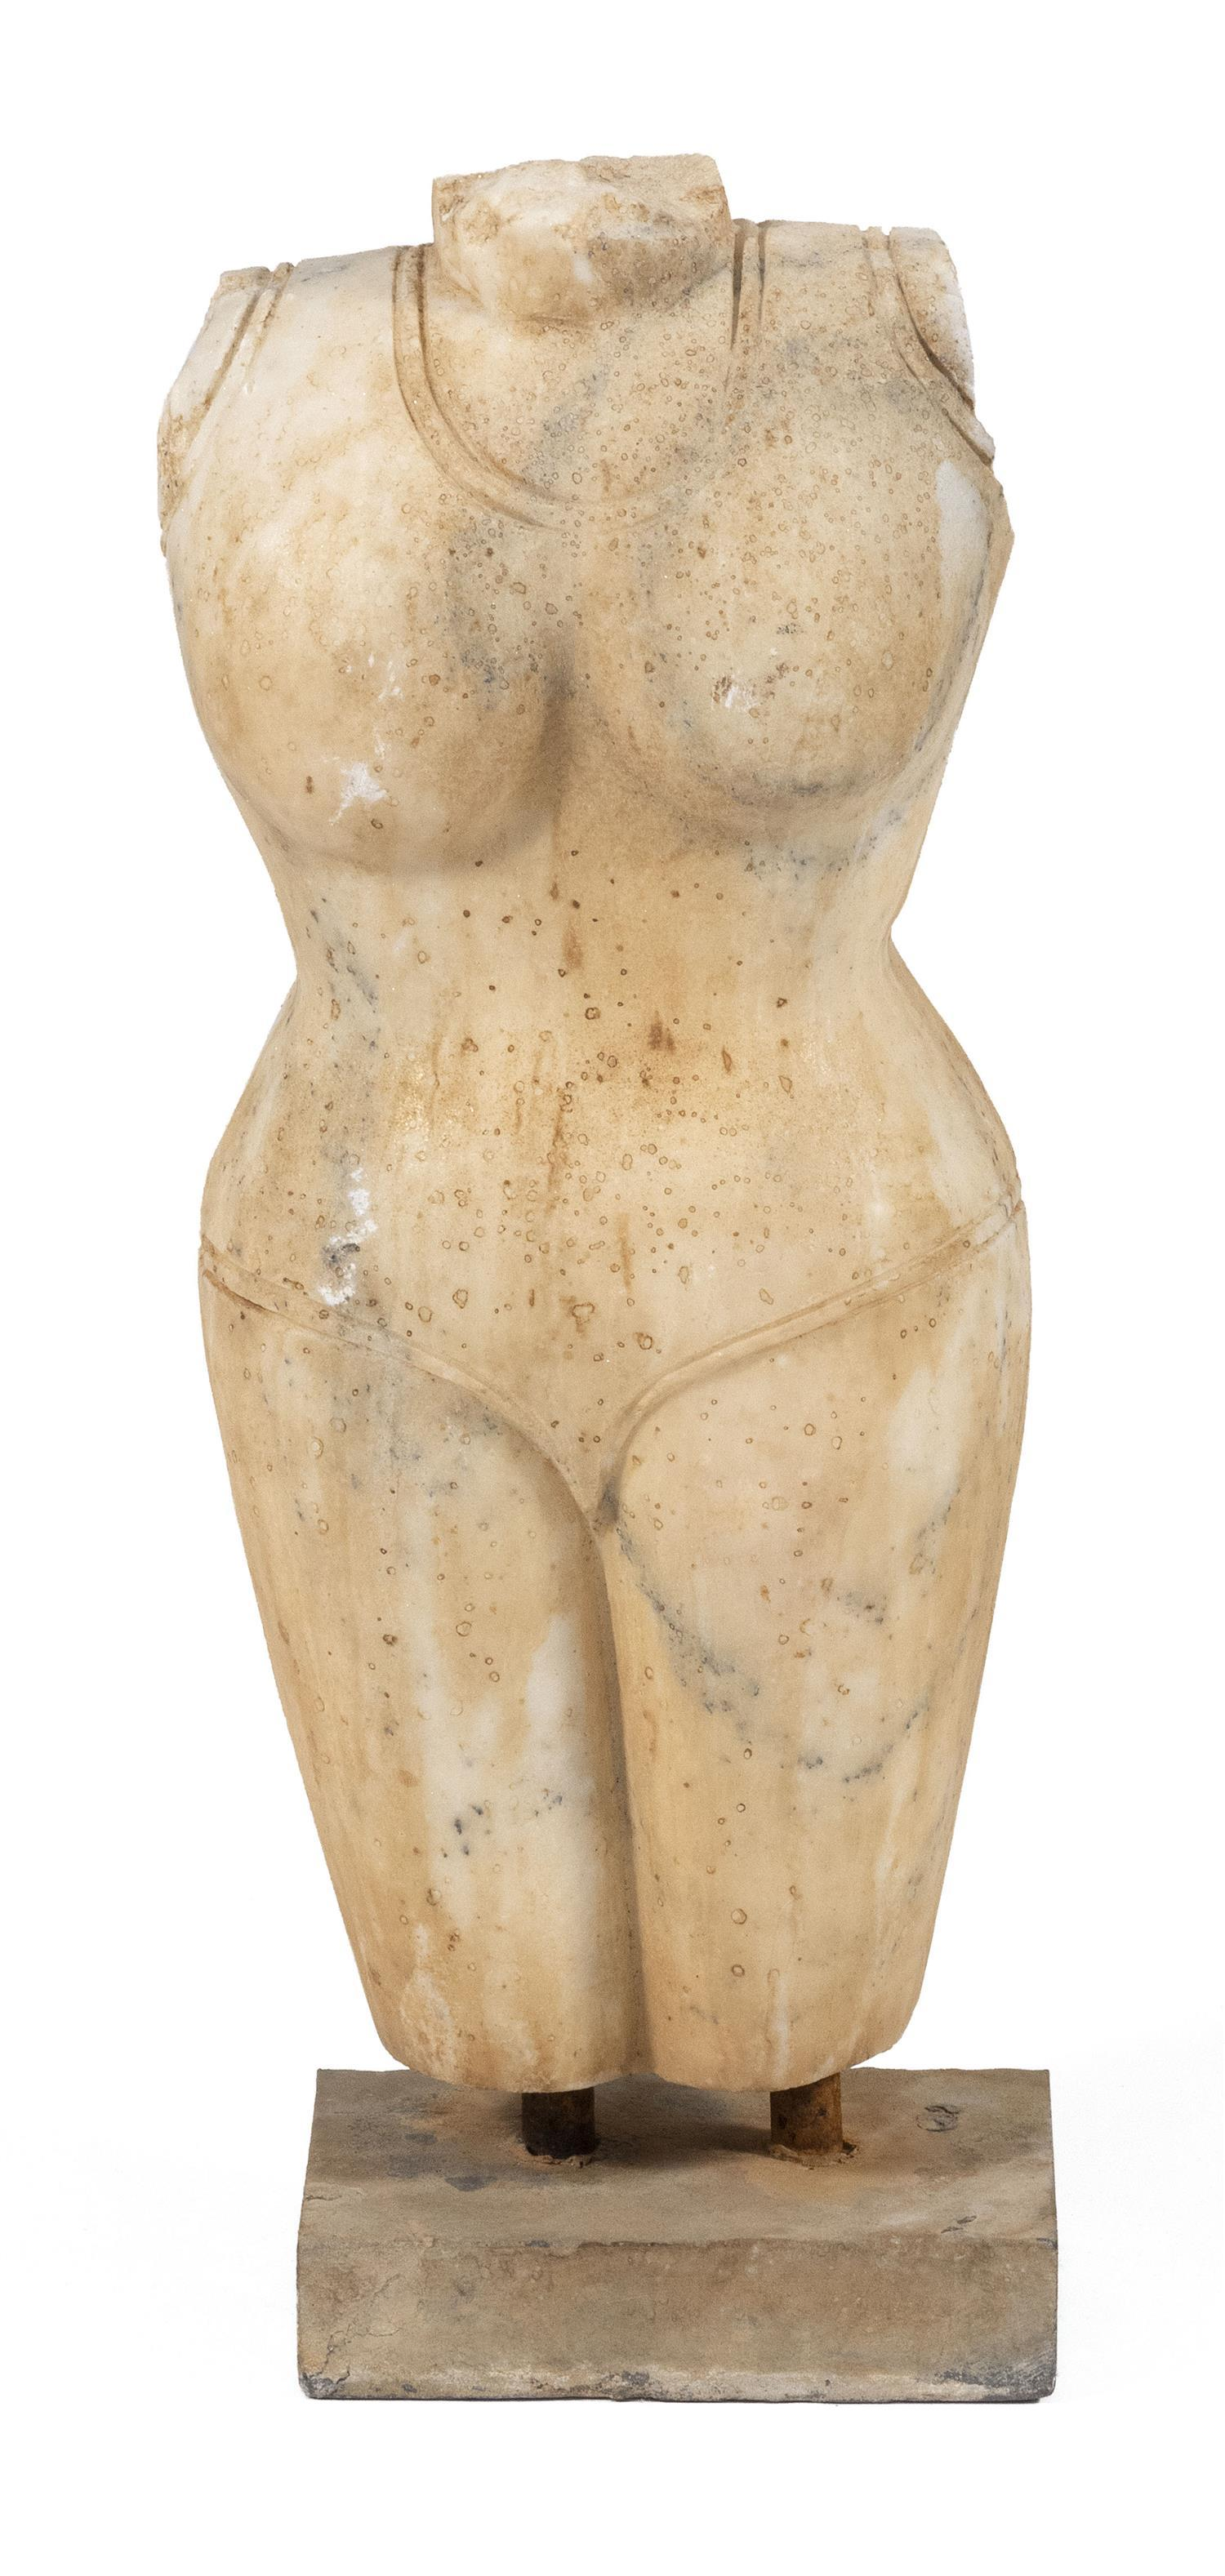 "WHITE MARBLE FIGURE OF NUDE FEMALE TORSO Indian, age unknown. Height 25""."